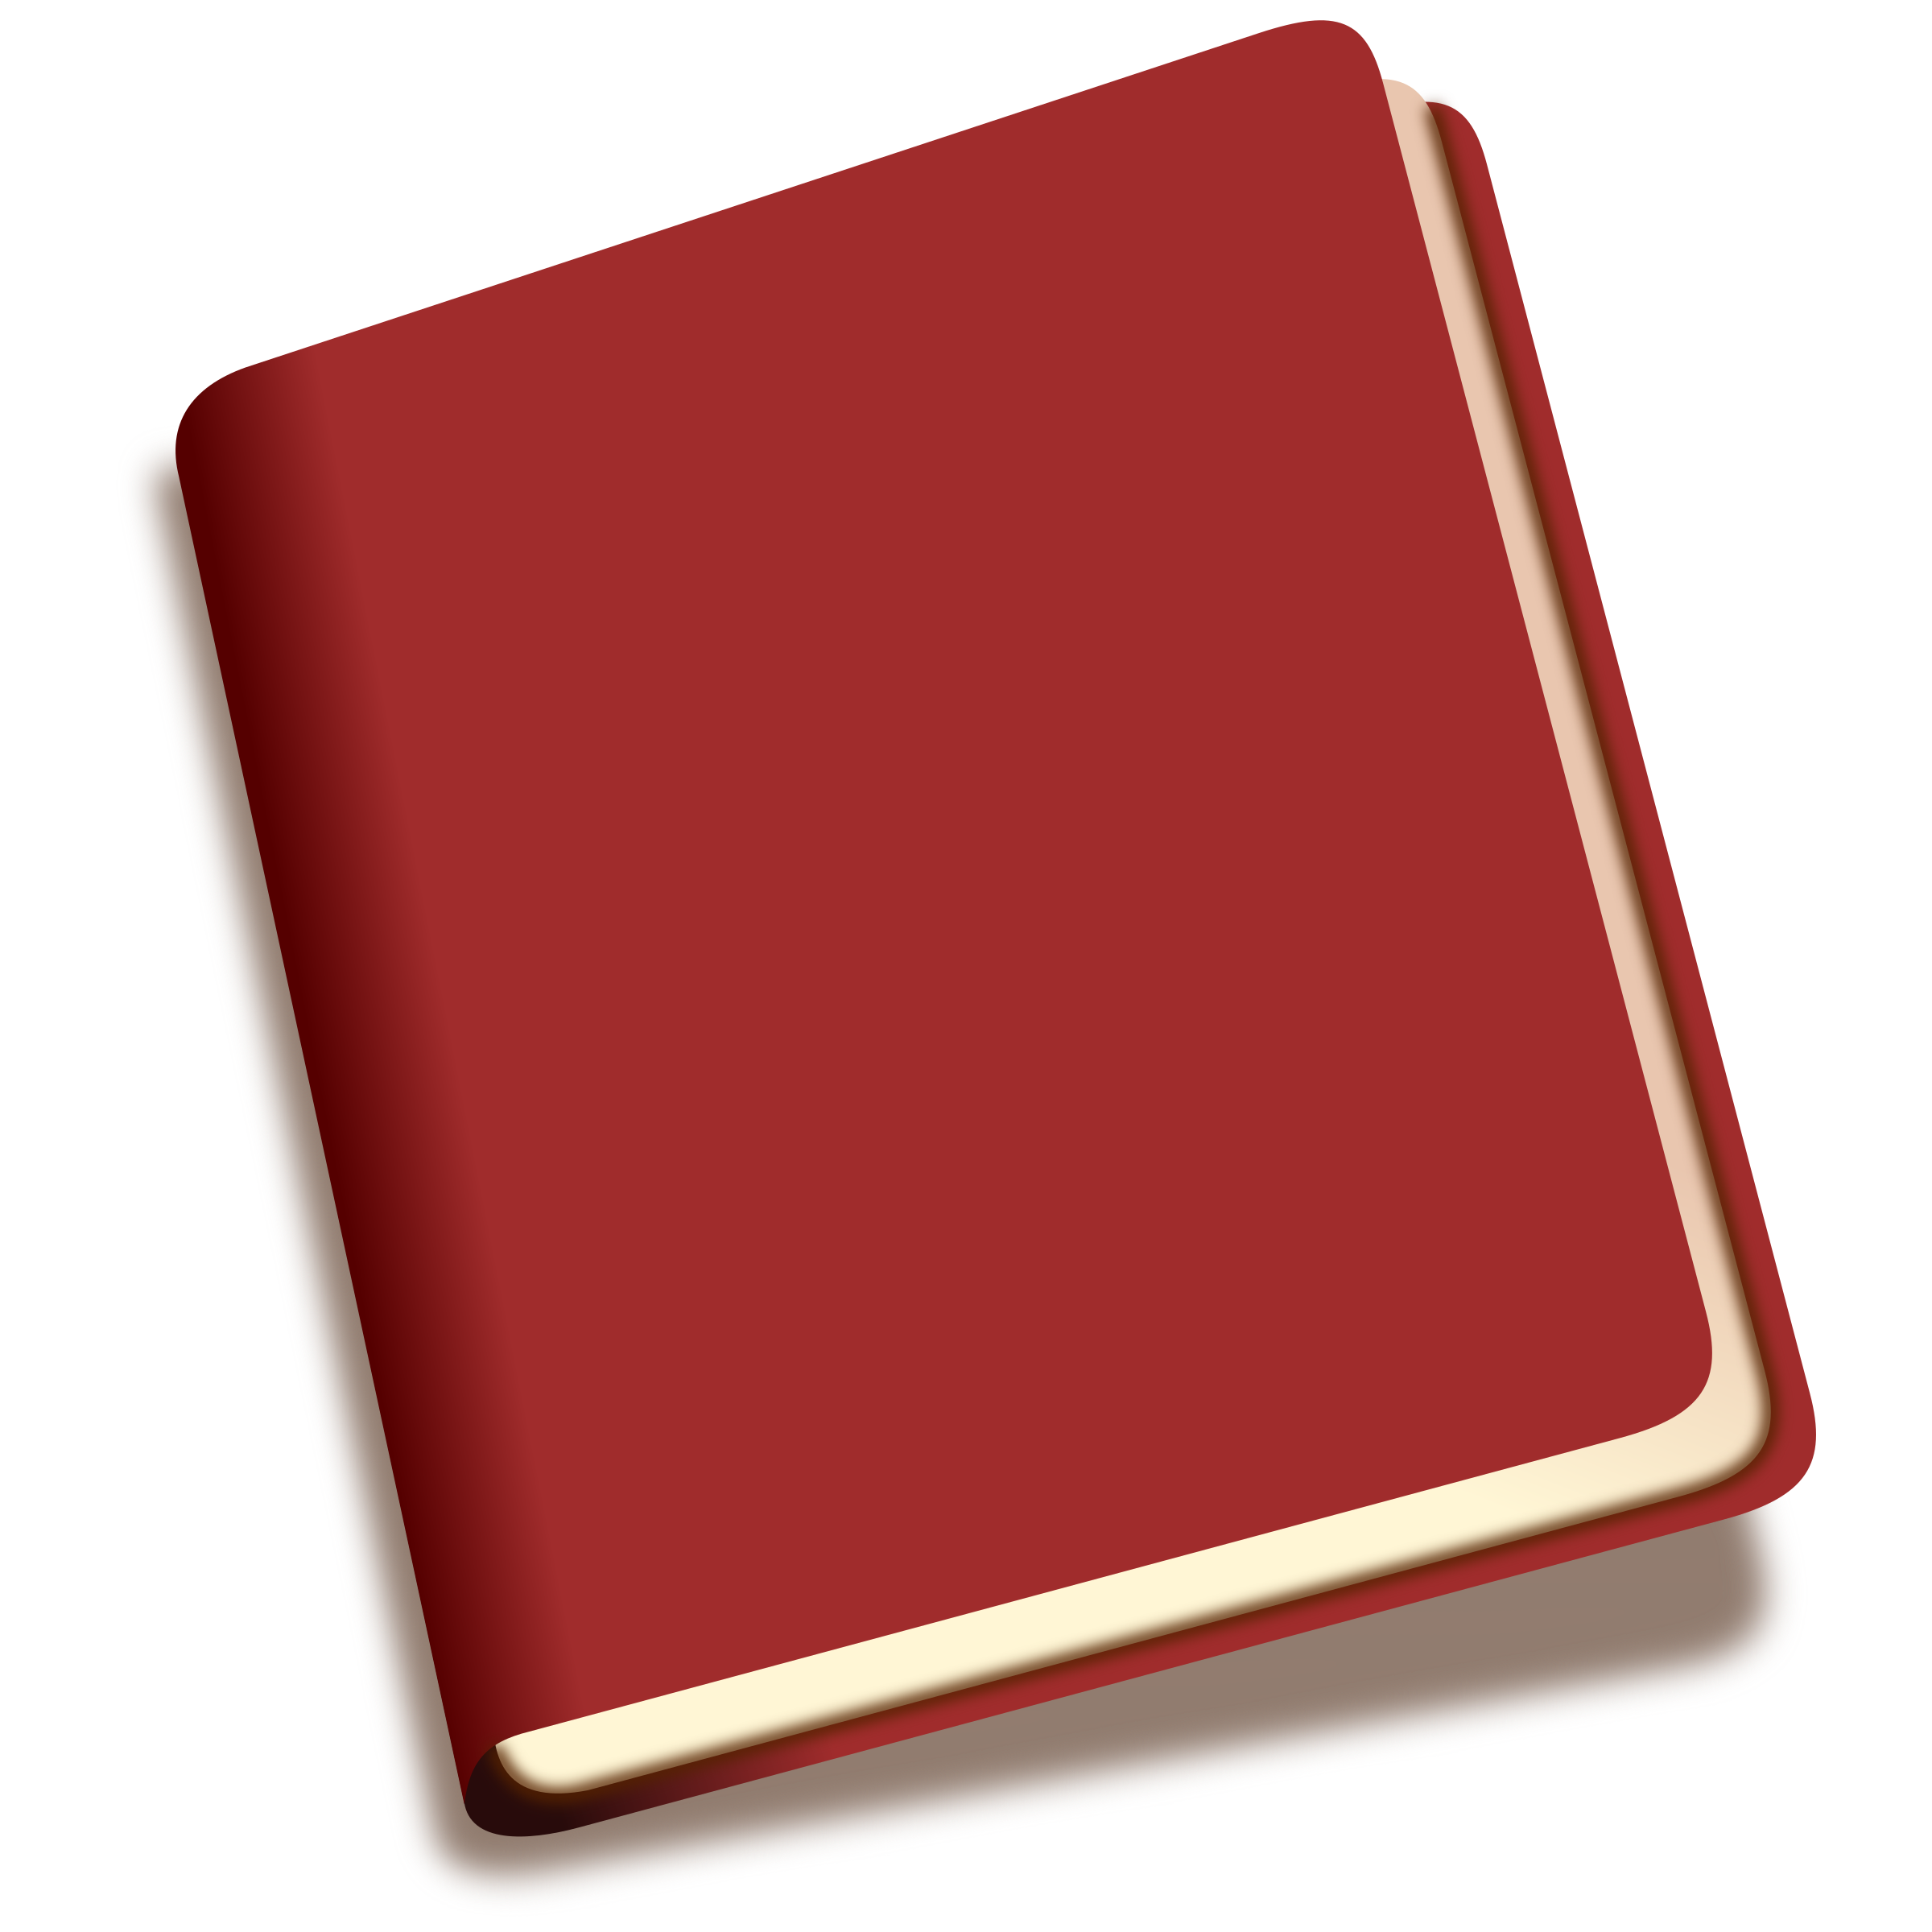 Book PNG Images Transparent Free Download.